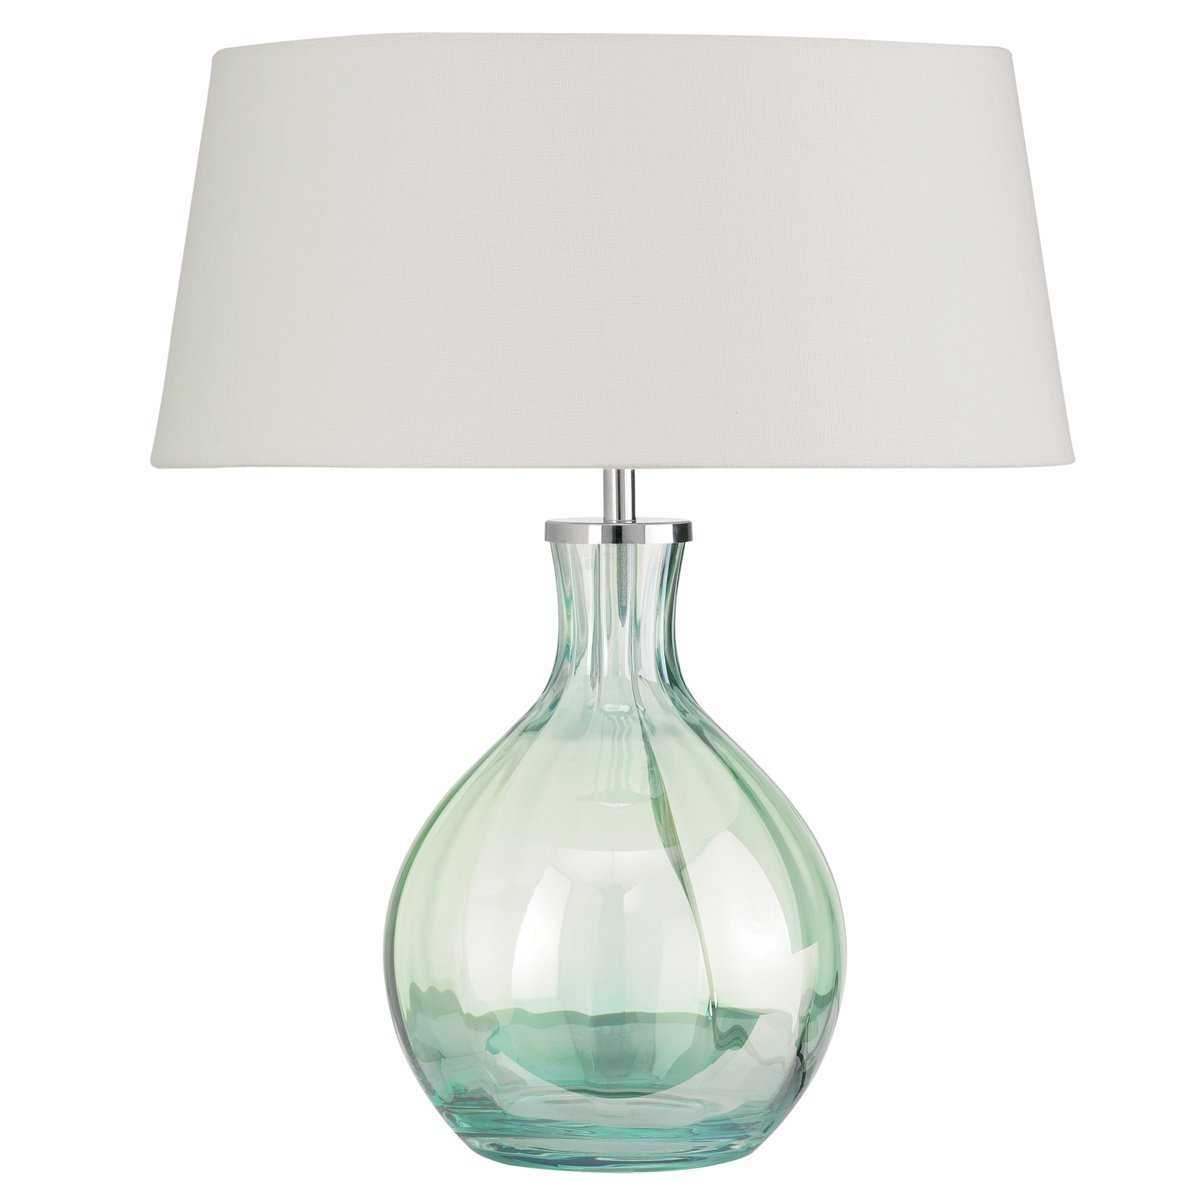 Best Led Table Lamps Crystal Table Lamps Bedroom With Pictures